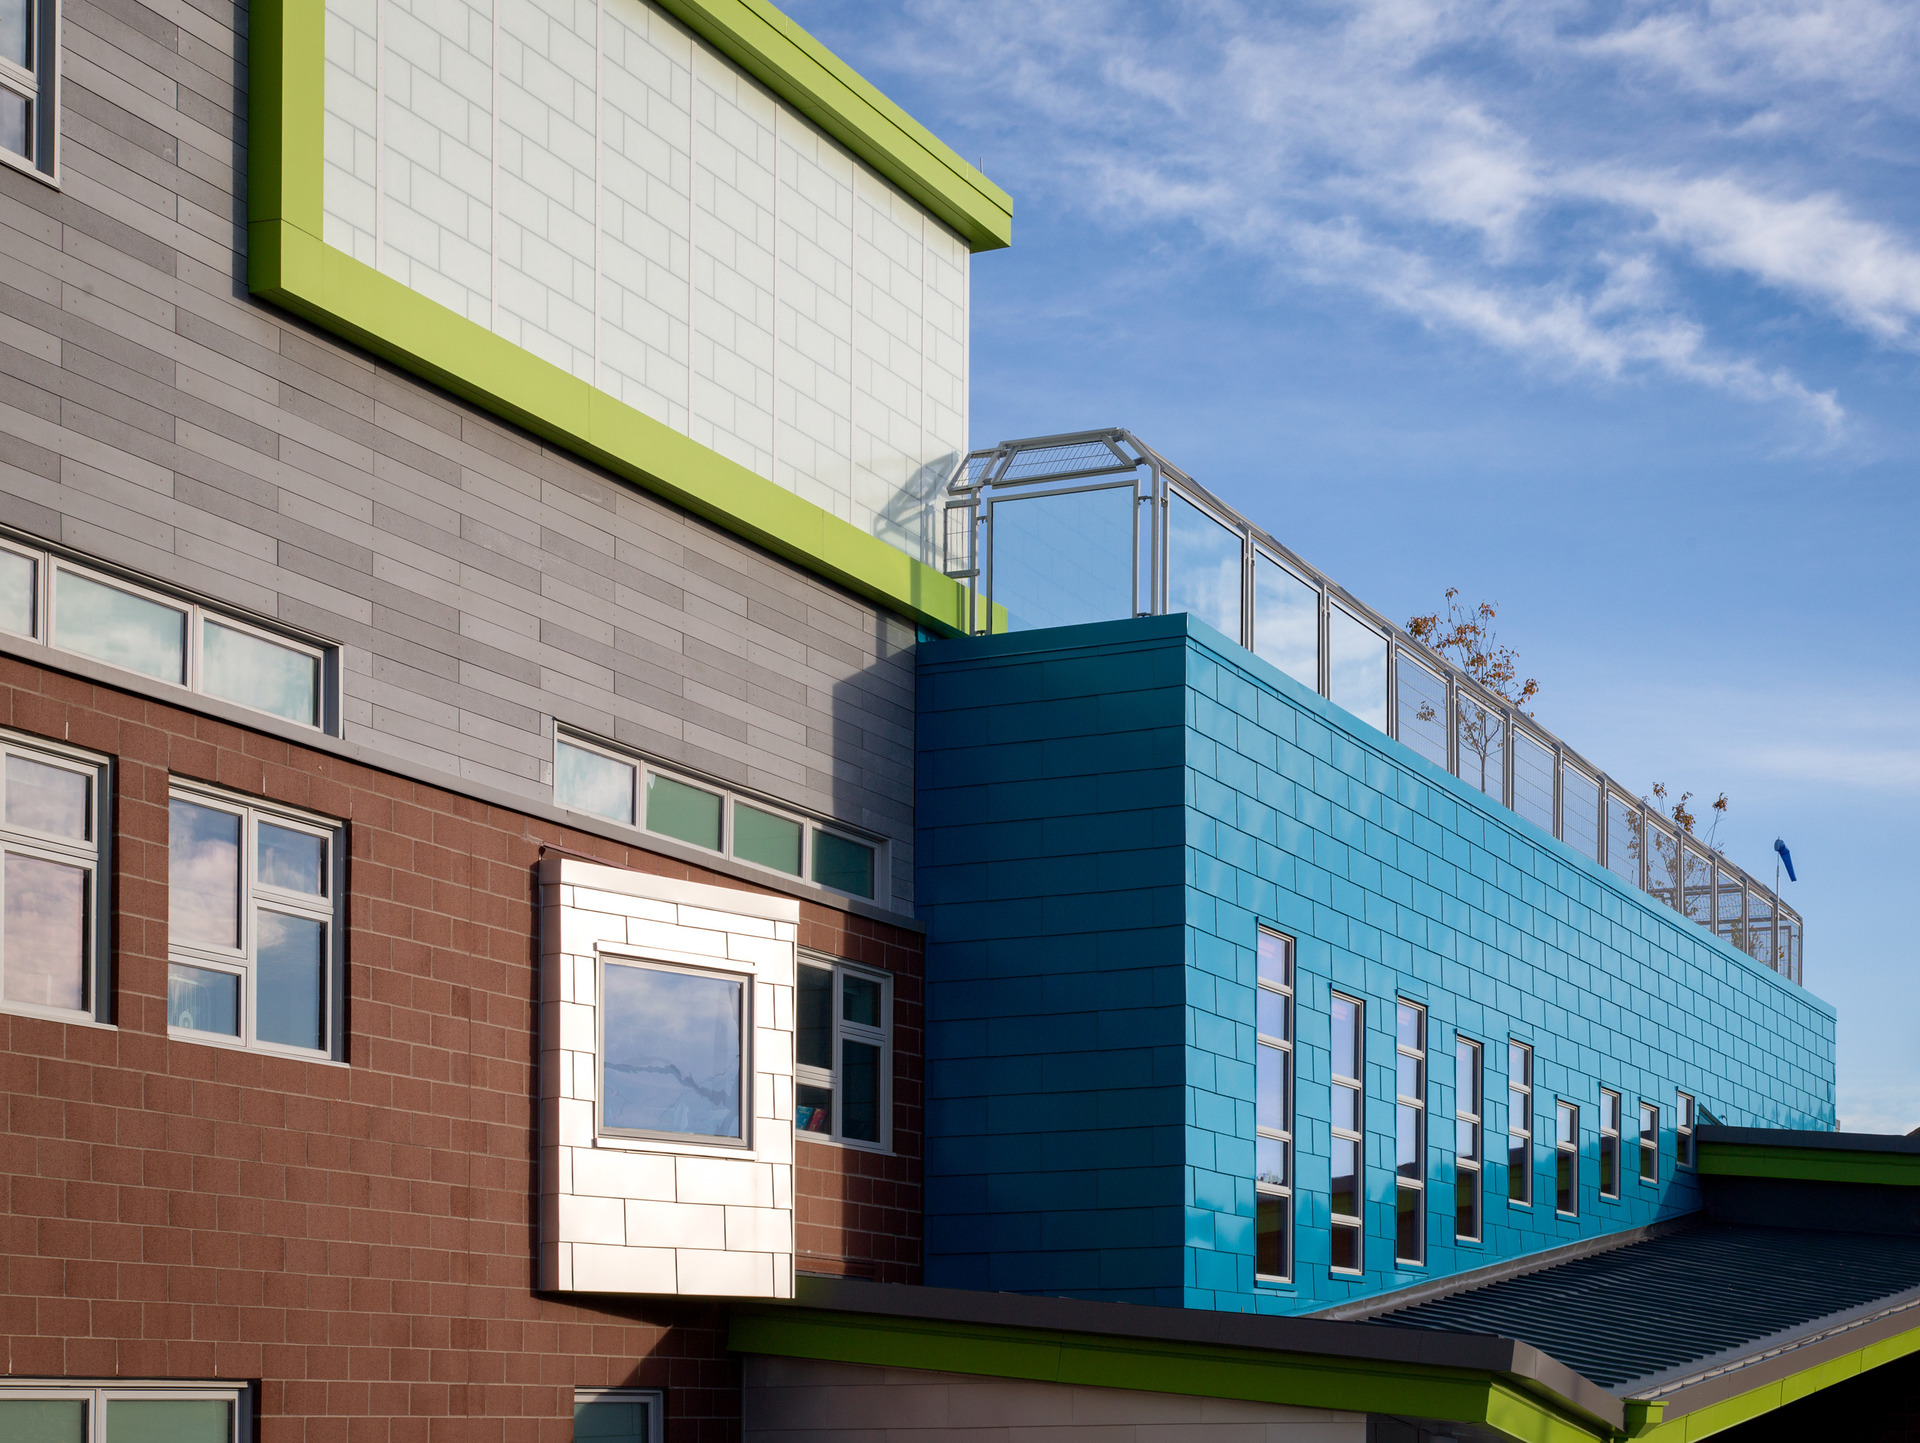 A multi-colored exterior encourages a vibrant and energetic atmosphere at Irwin M. Jacobson Elementary in New Bedford, MA. Architect Series® Traditional windows were used for the school's various window systems.